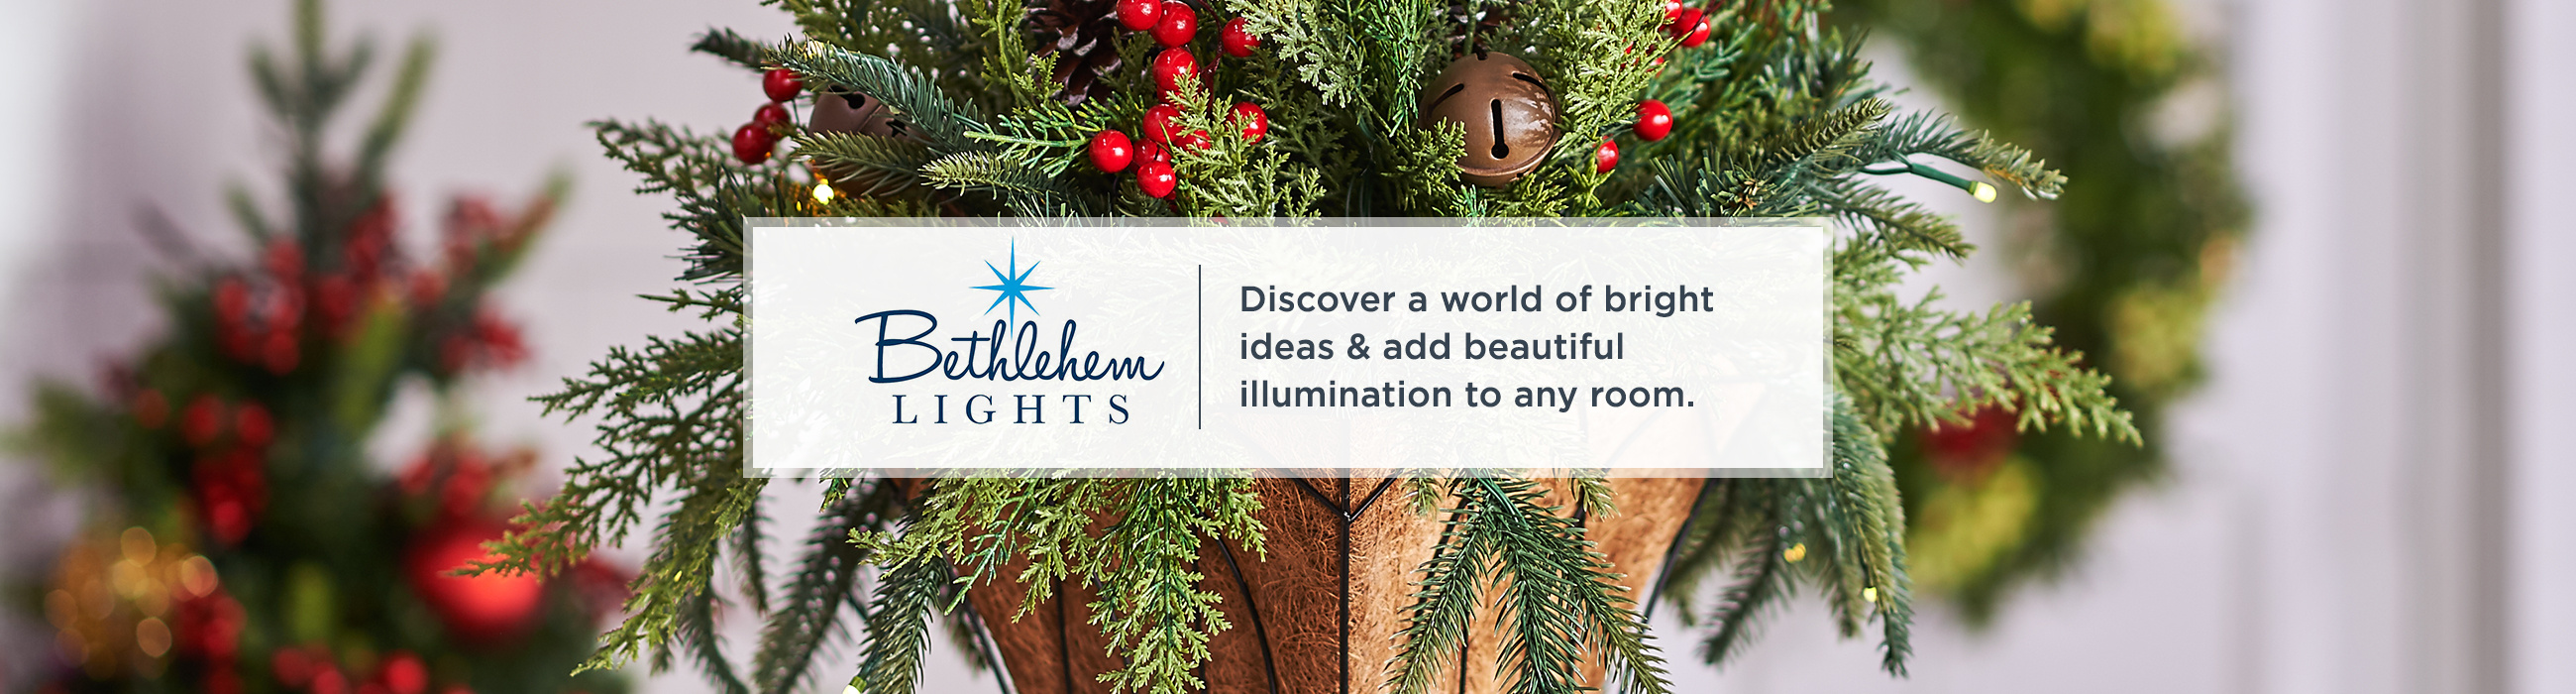 bethlehem lights discover a world of bright ideas add beautiful illumination to any room